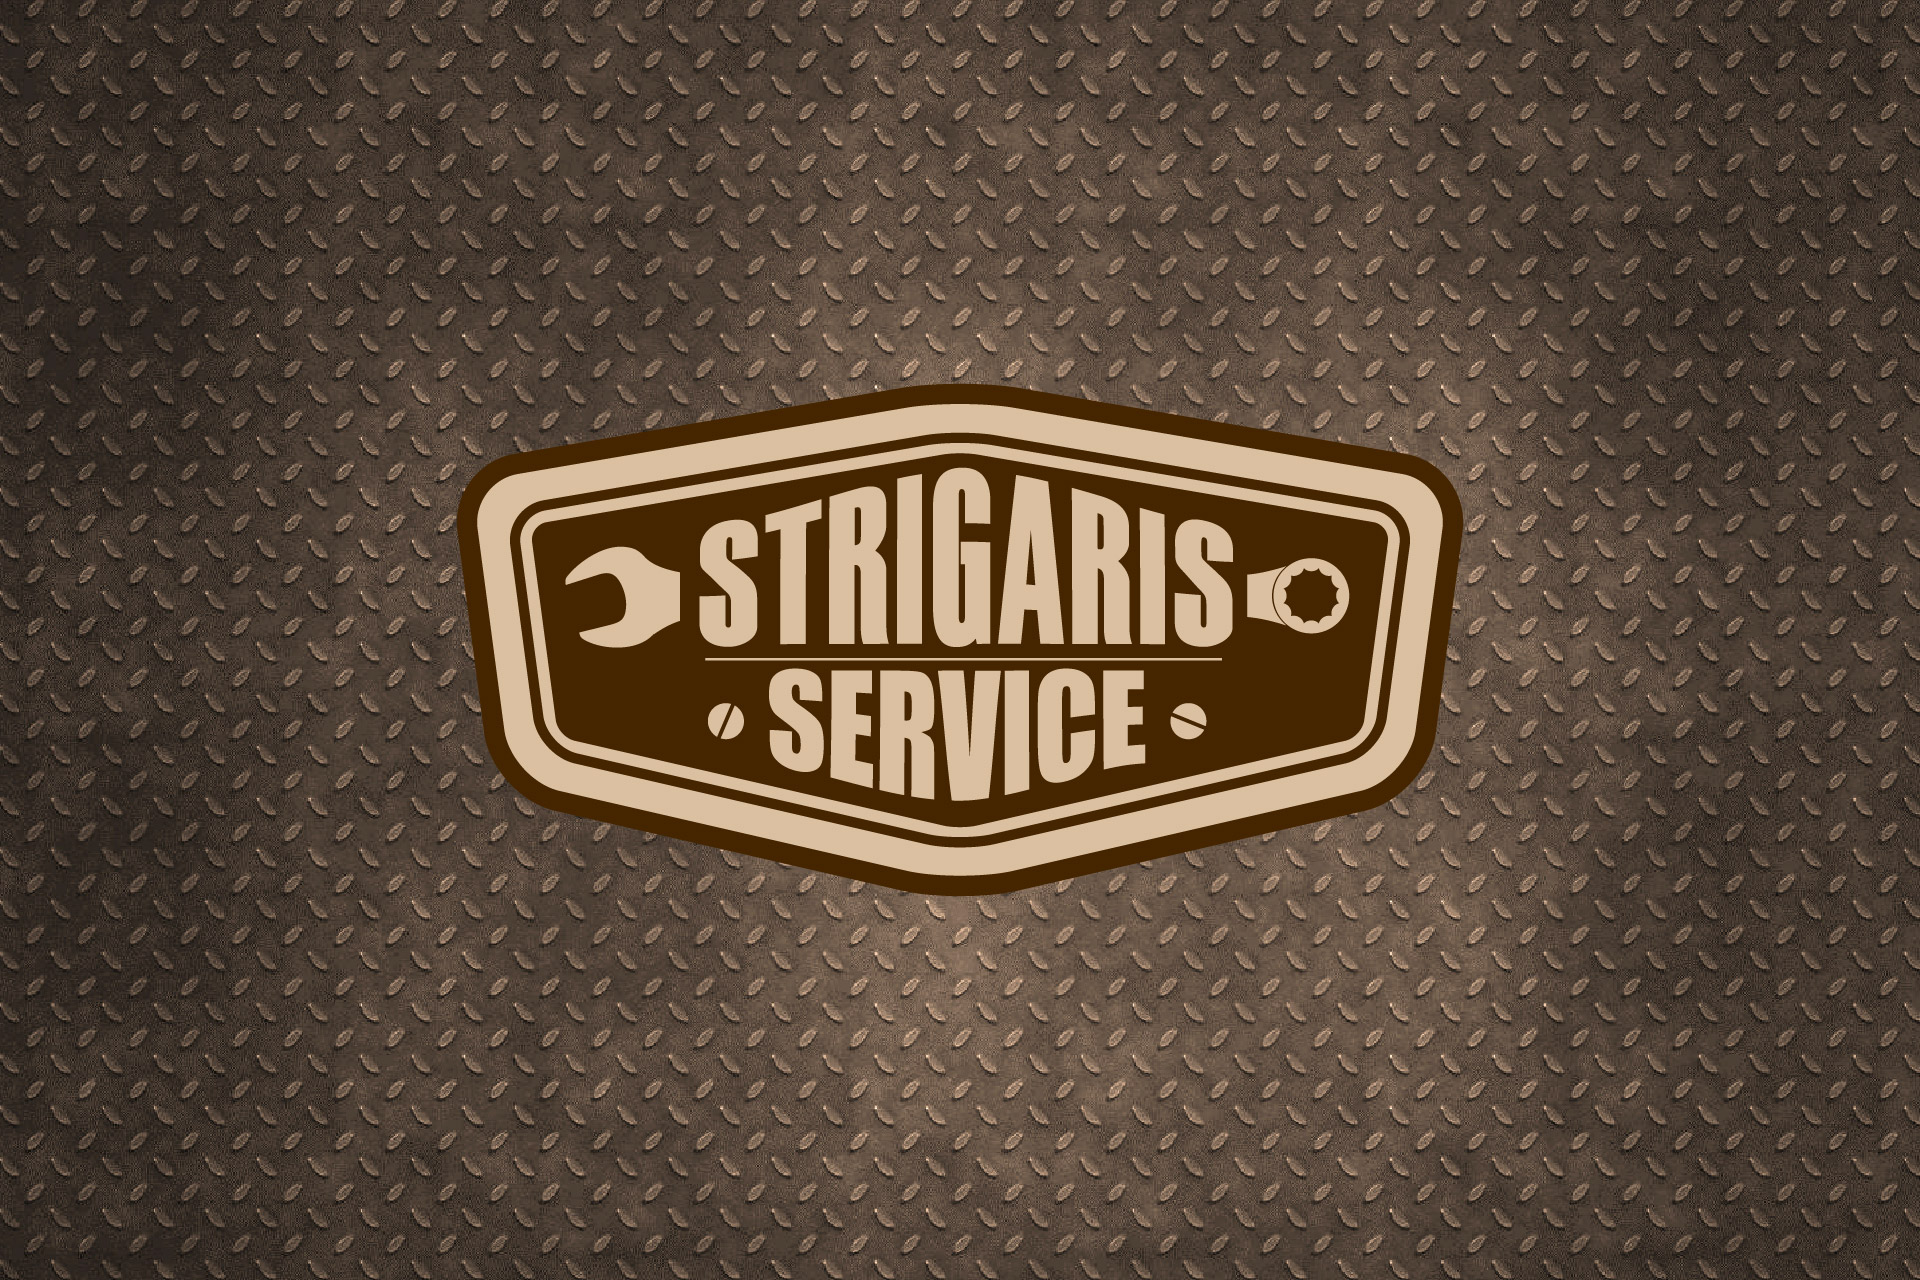 Strigaris service